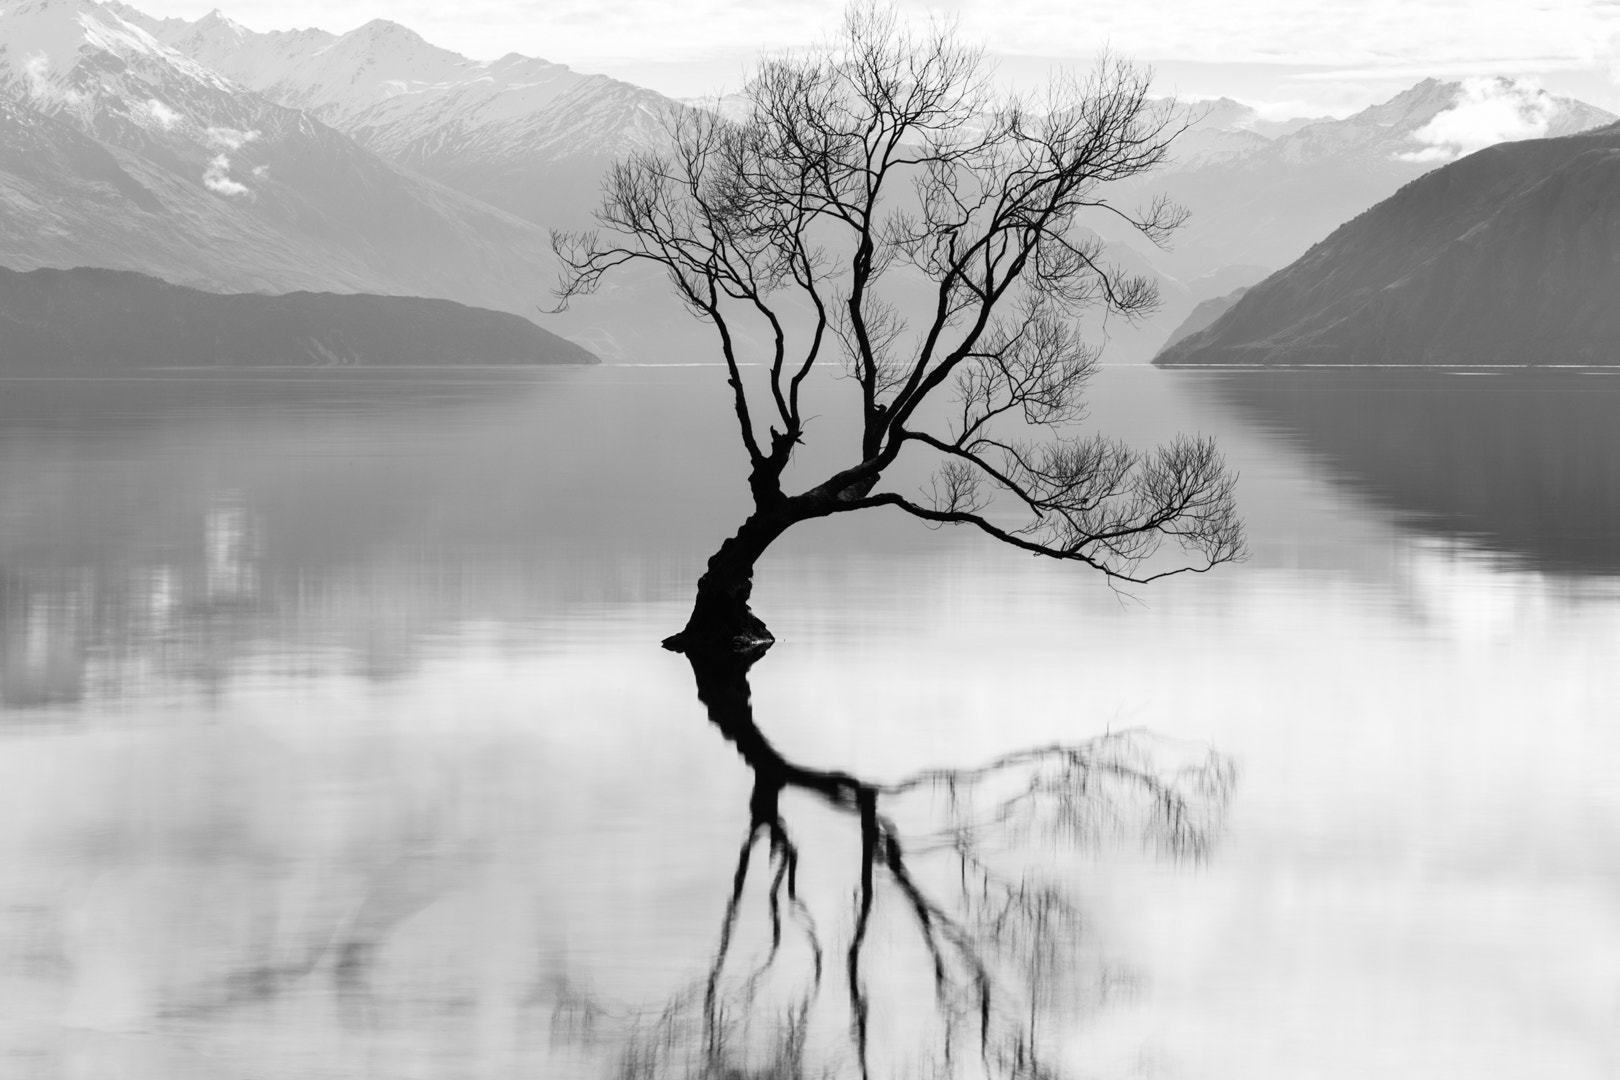 Photograph Wanaka Tree by Paul Conroy on 500px